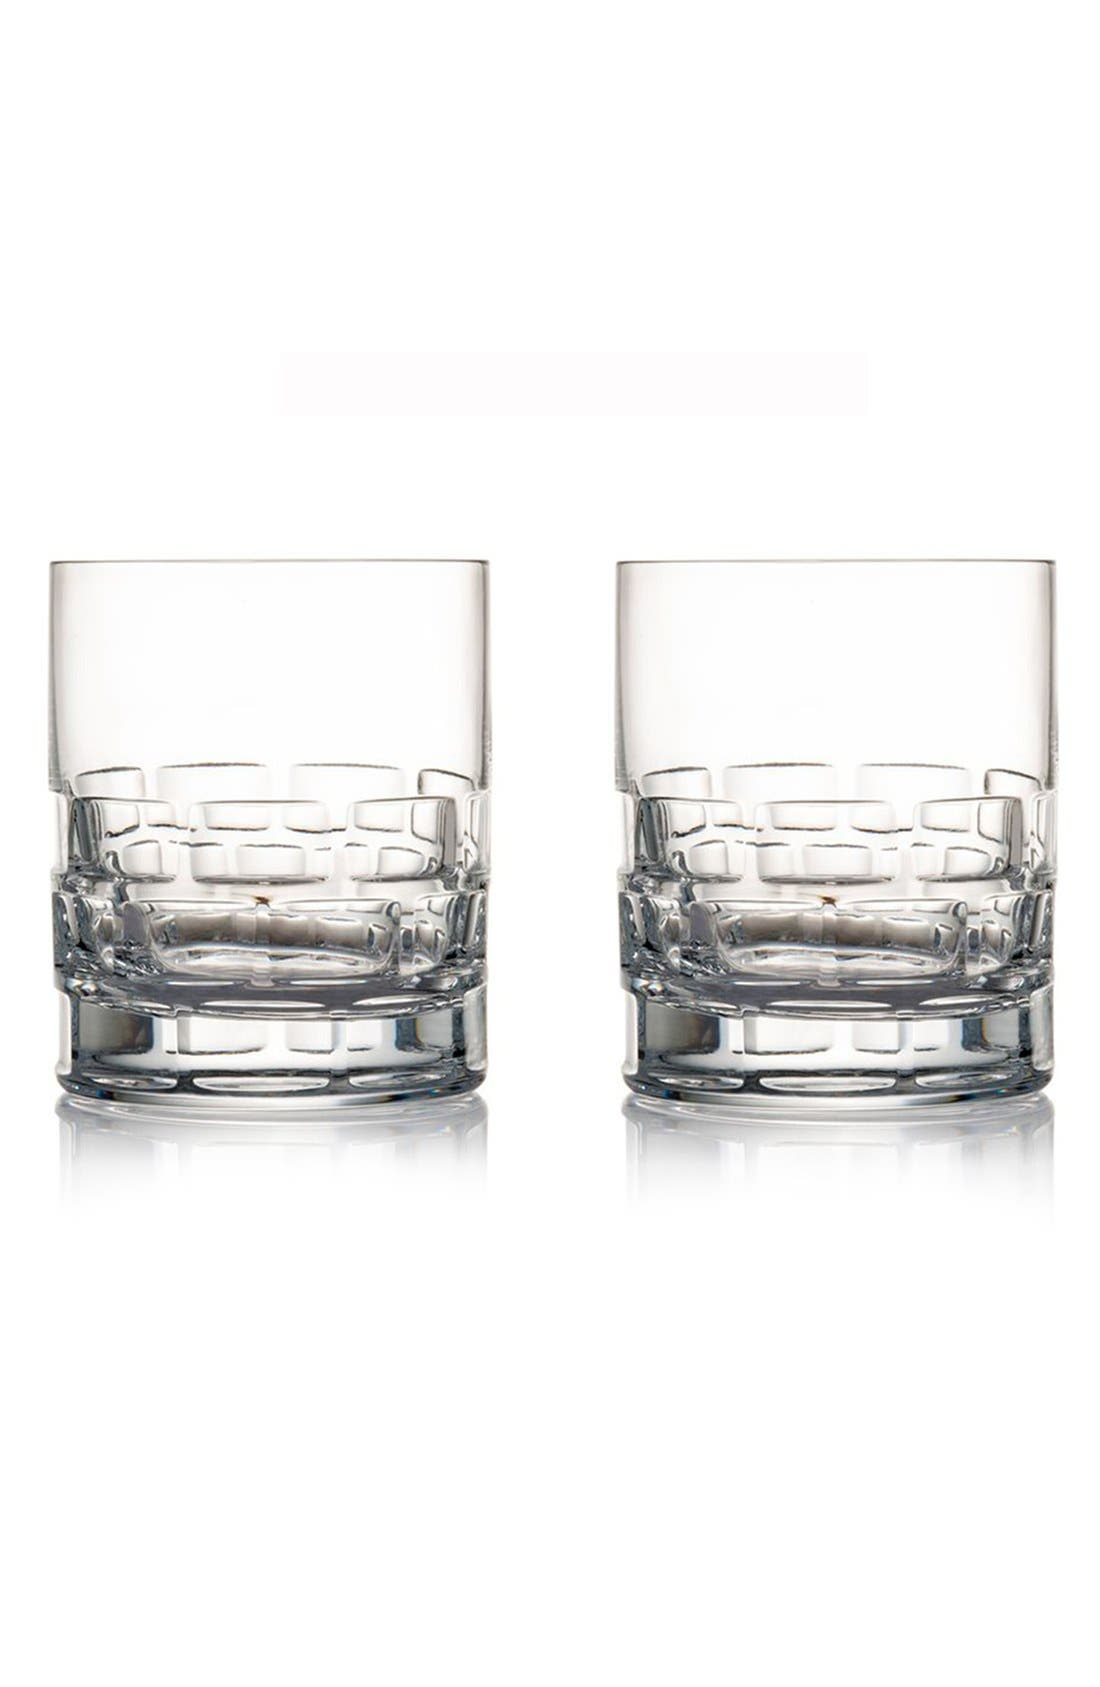 Alternate Image 1 Selected - Rogaska Crystal 'Maison' Lead Crystal Double Old Fashioned Glasses (Set of 2)